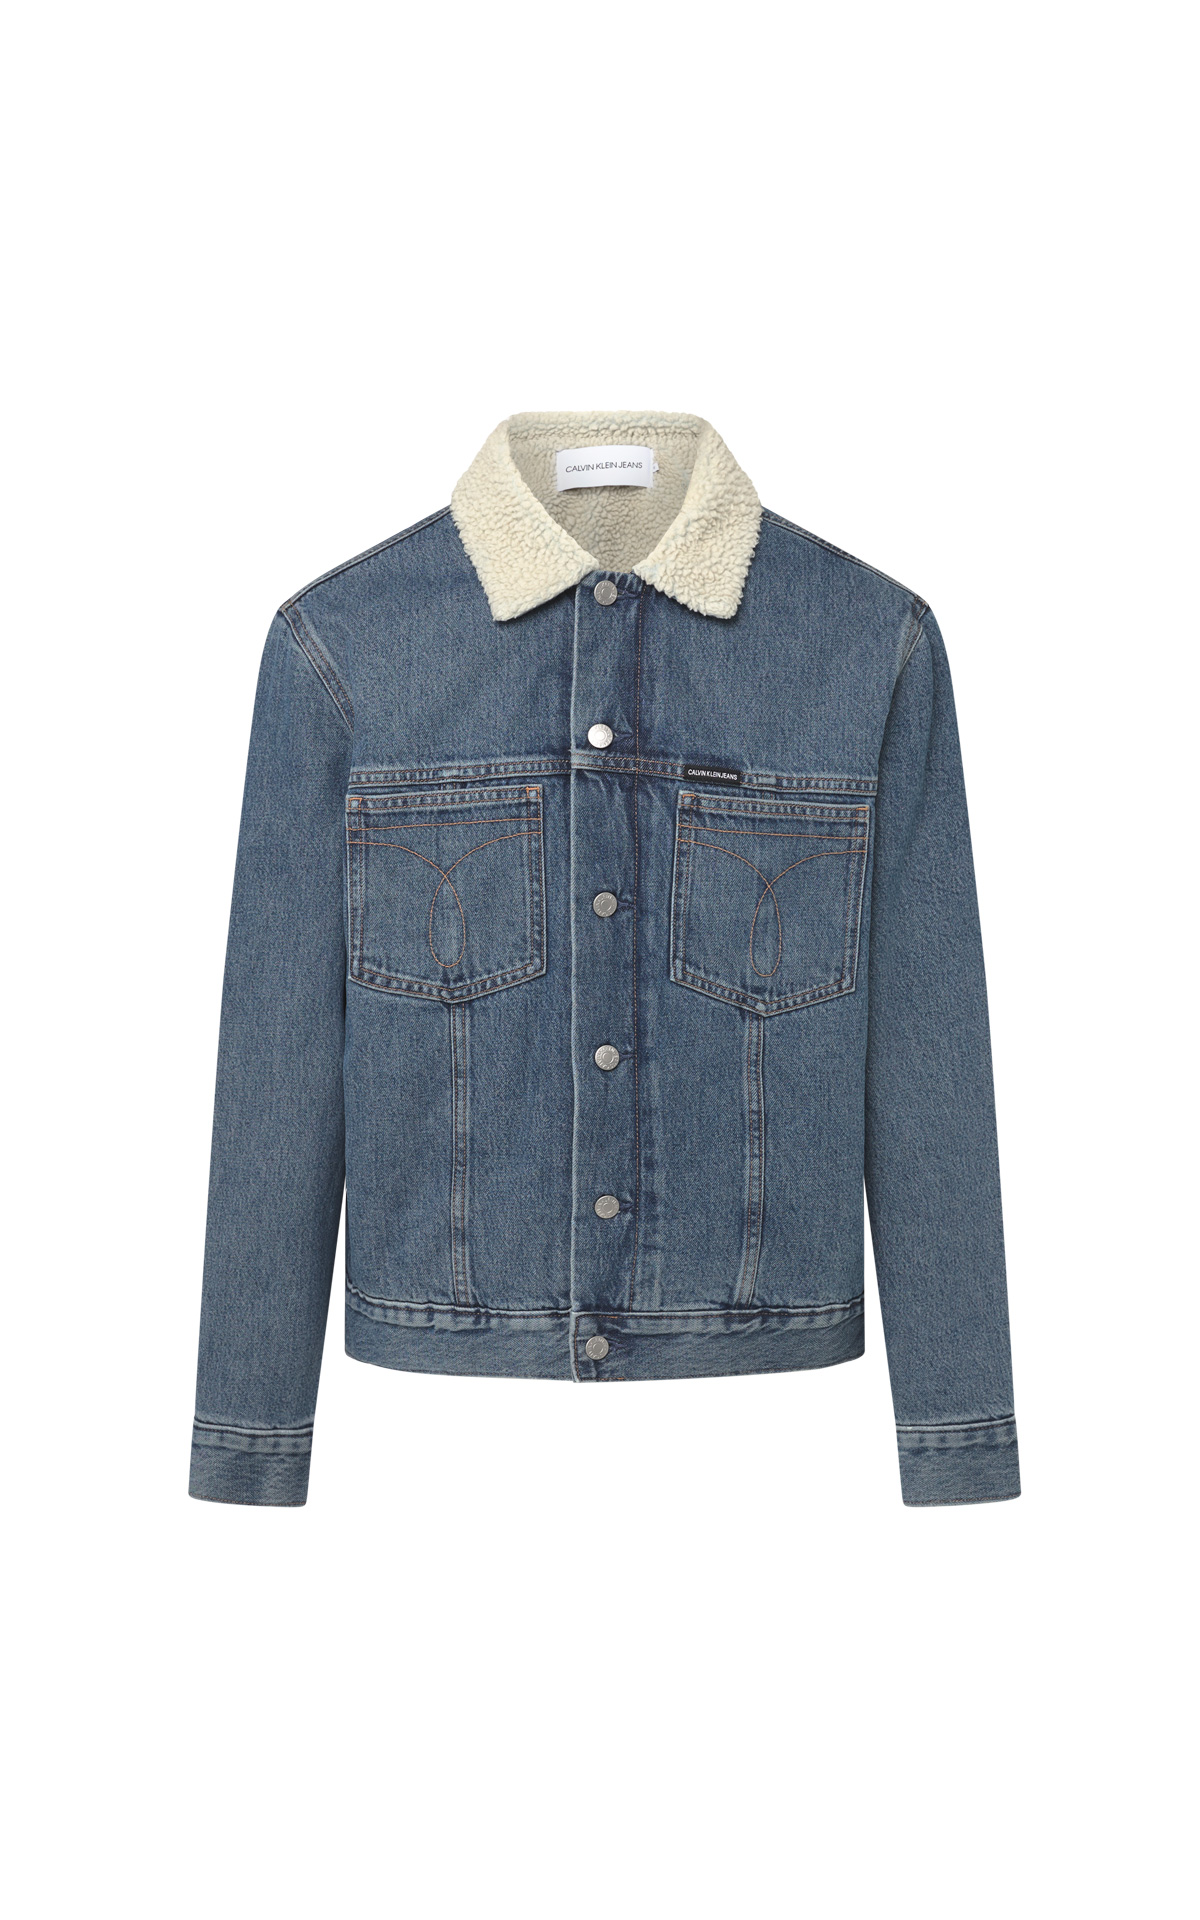 Denim jacket faux shearling from Calvin Klein Jeans